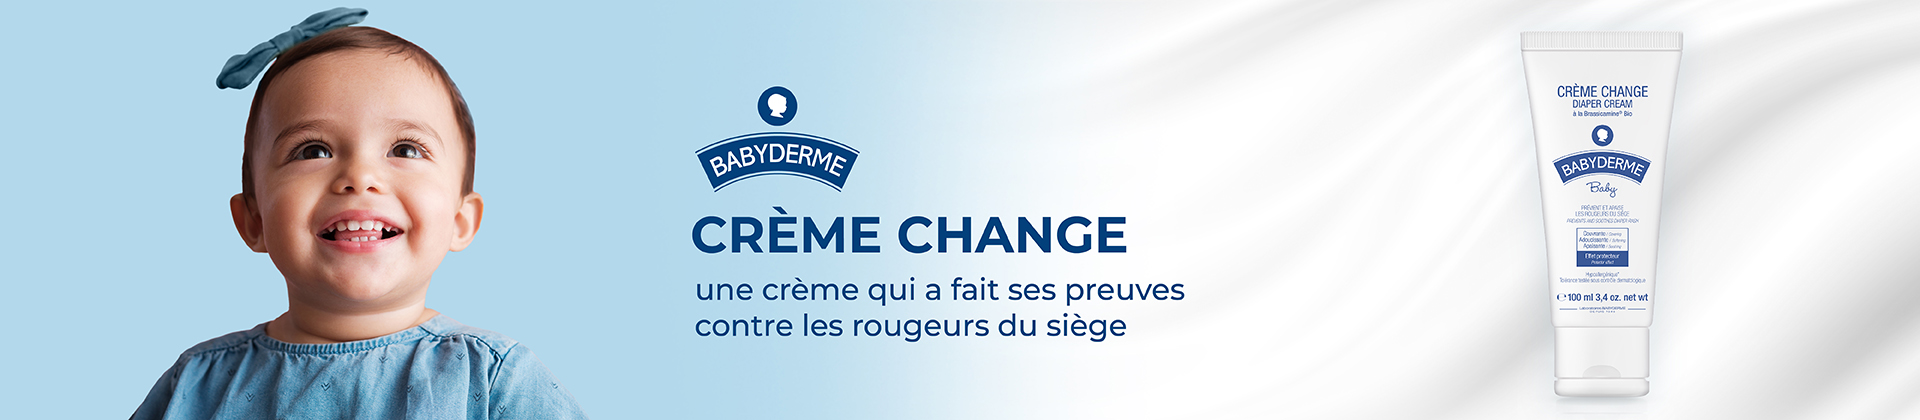 header creme change babyderme